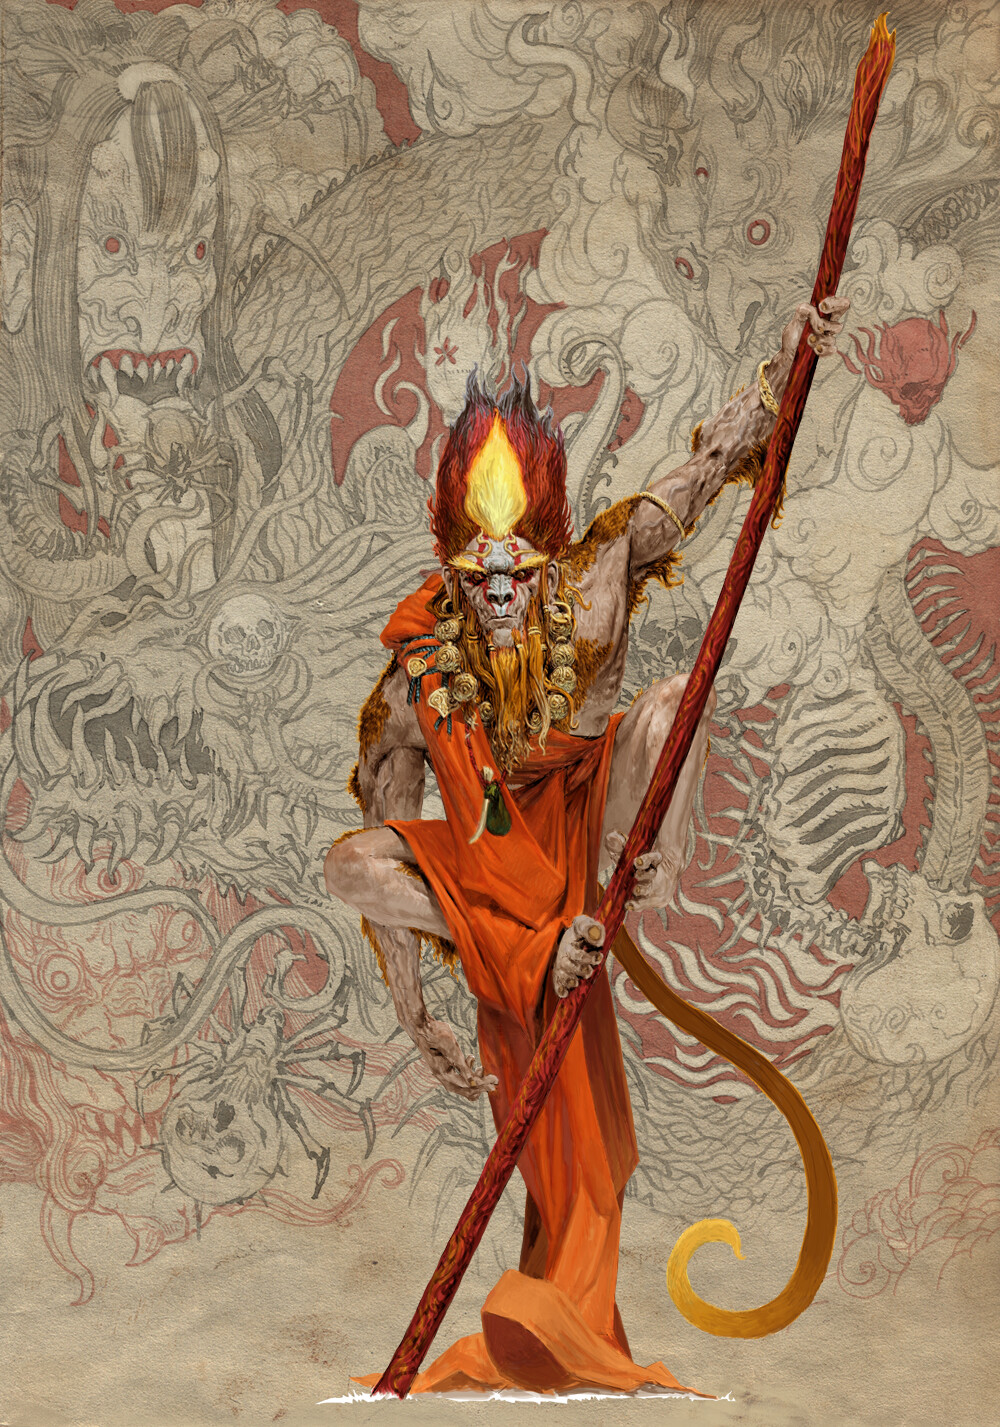 Adrian smith monster demon spirit kani monkey